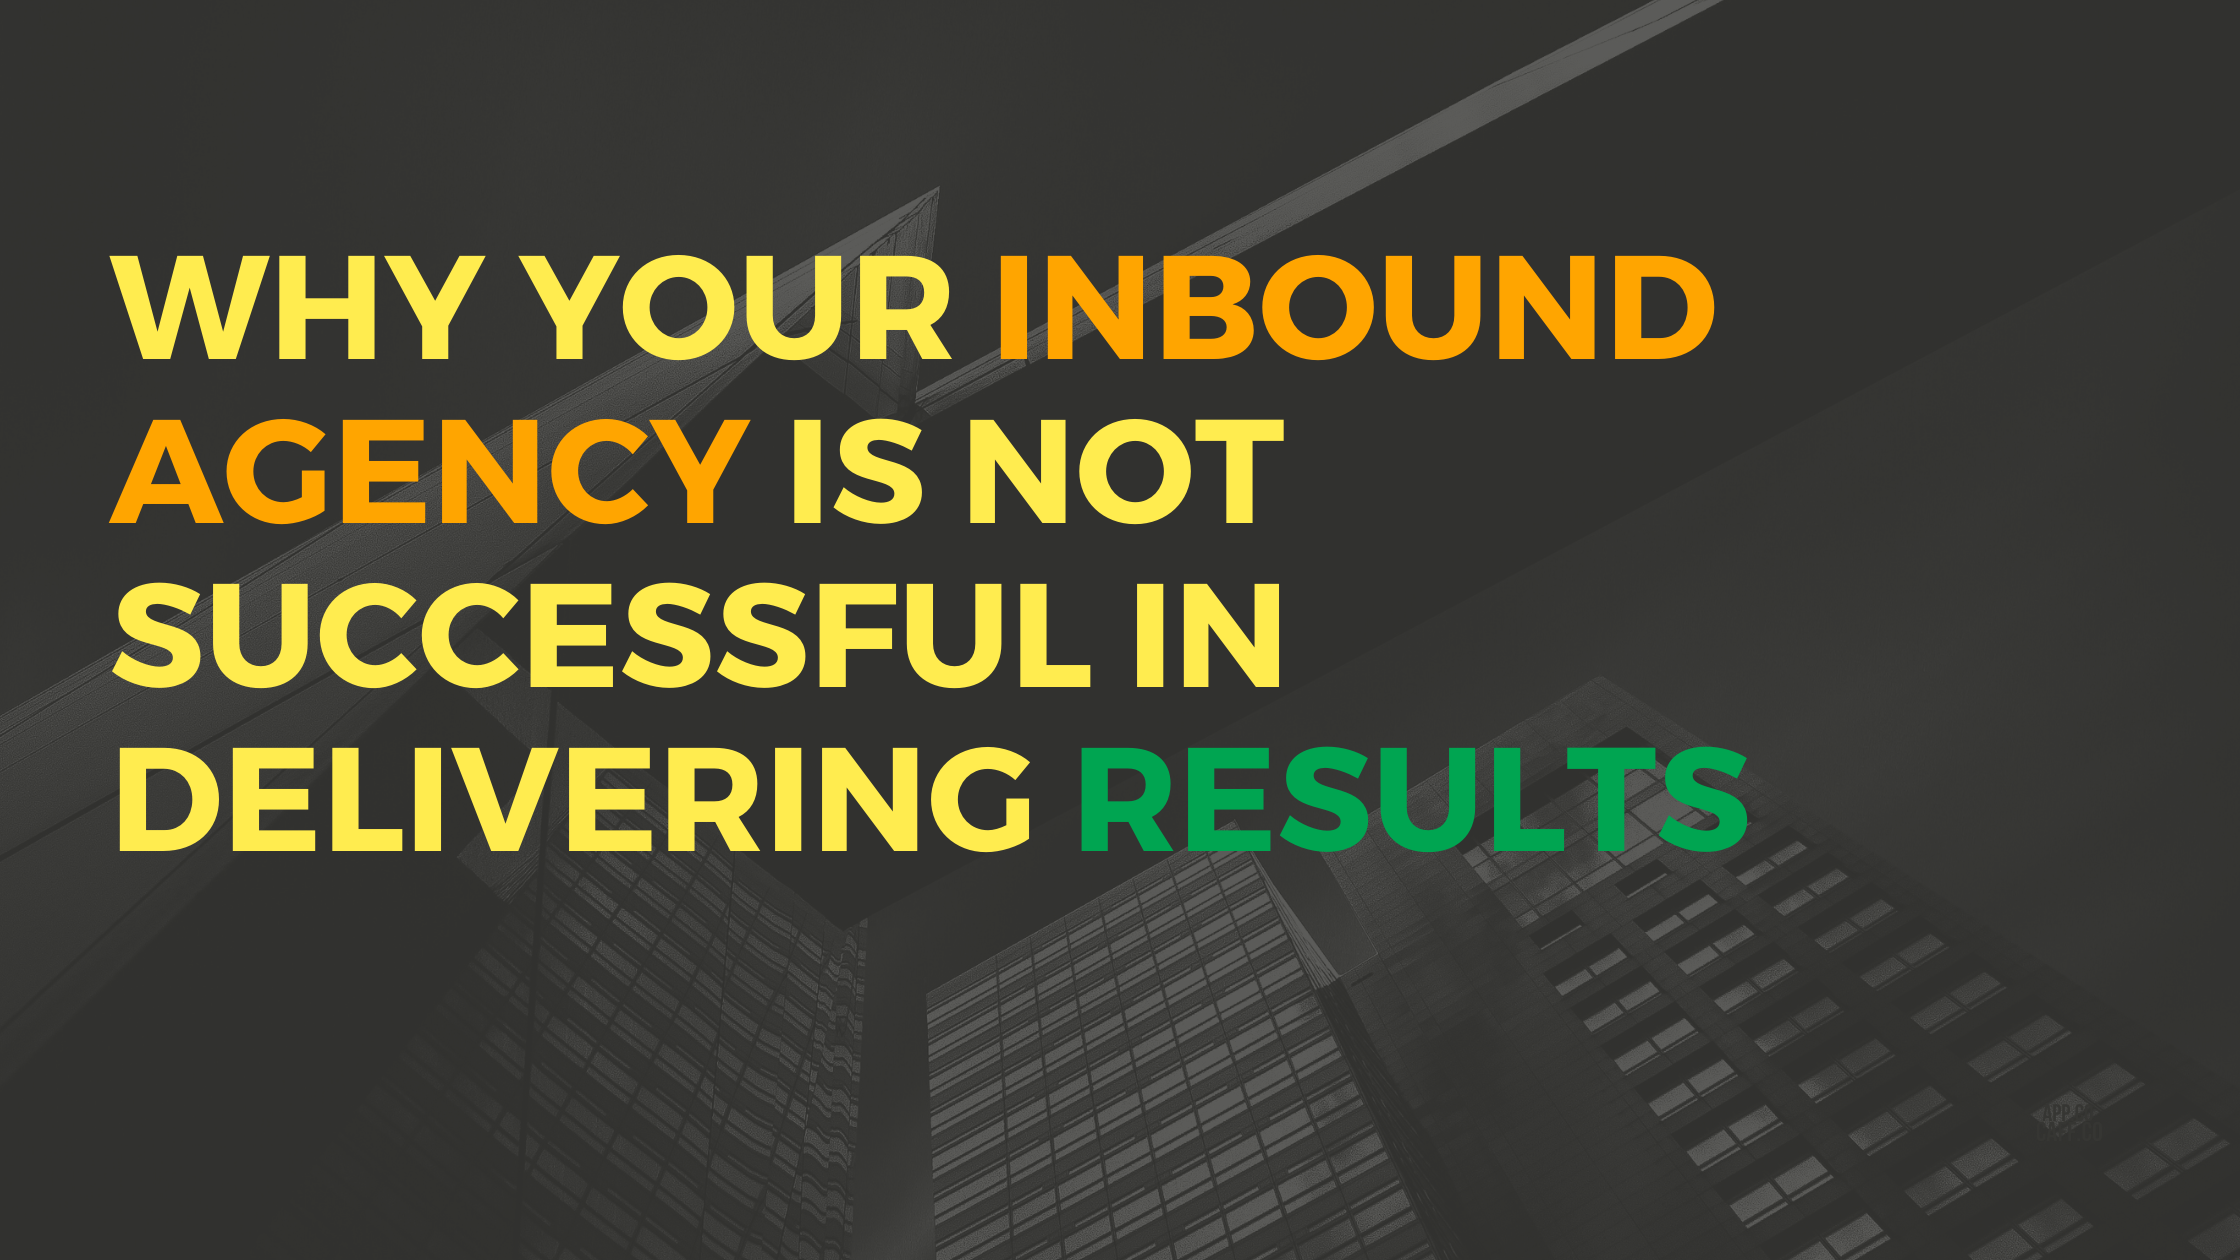 Why your inbound agency is not successful in delivering results